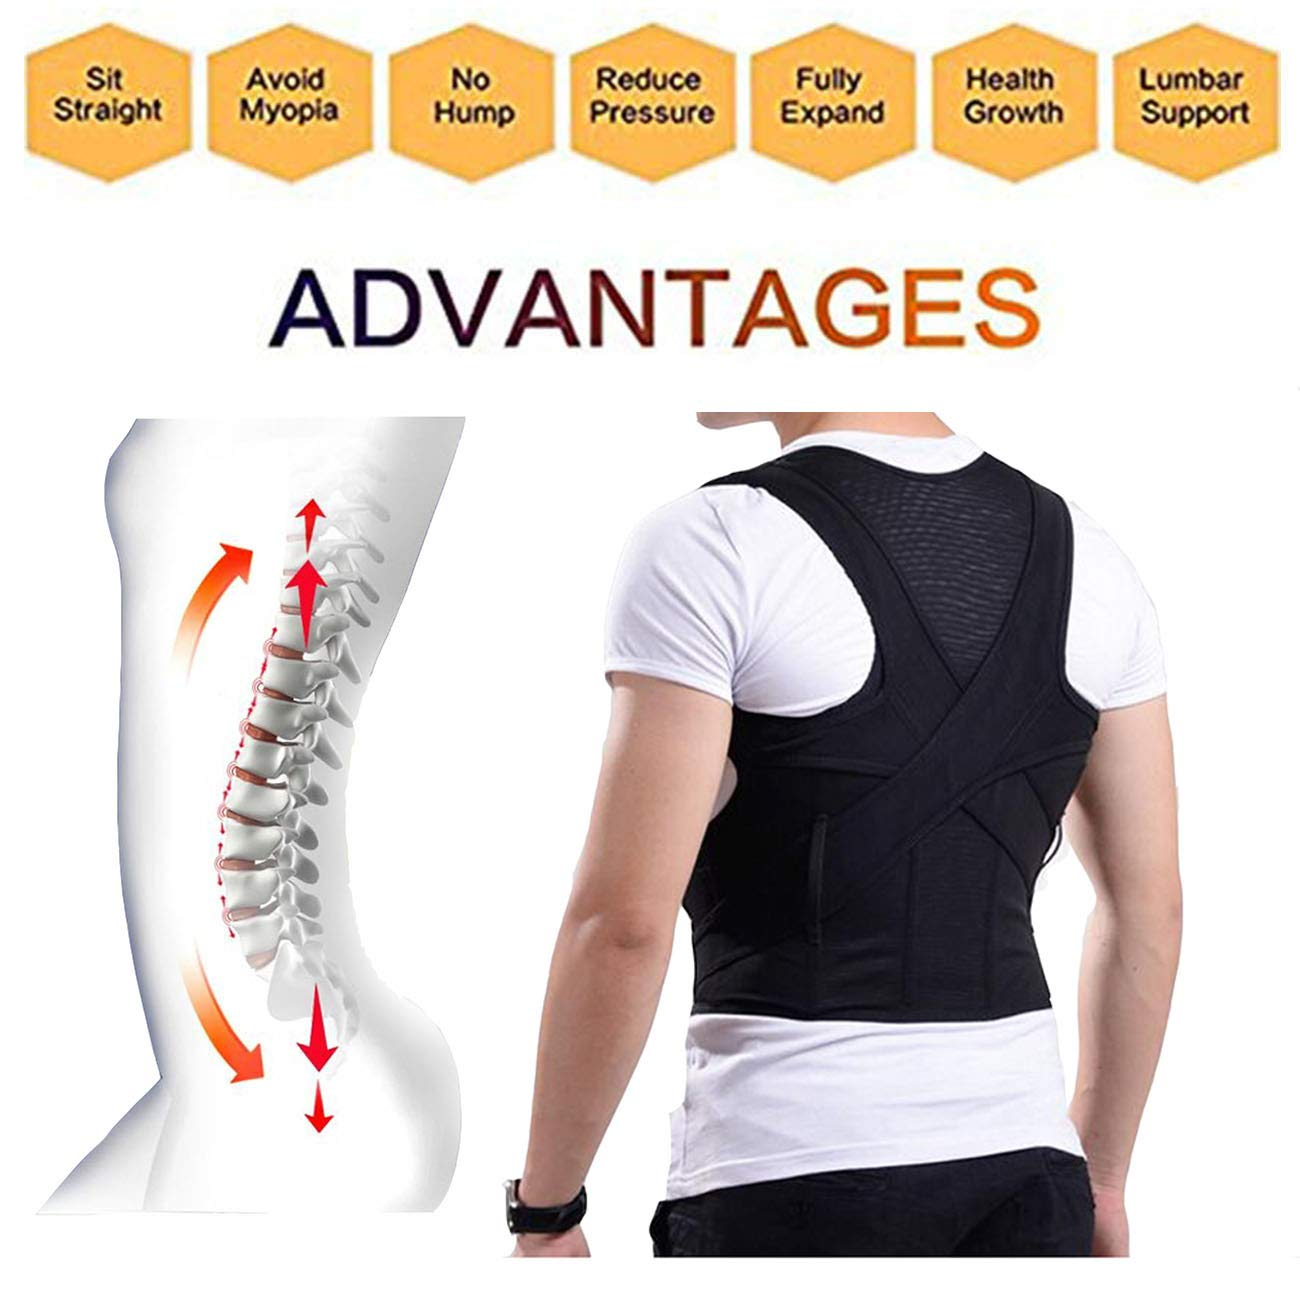 Hunchback Correction Clothes,Posture Corrector,Shoulder Brace,Effective and Comfortable,Upper and Lower Back Pain Relief. (XXL)